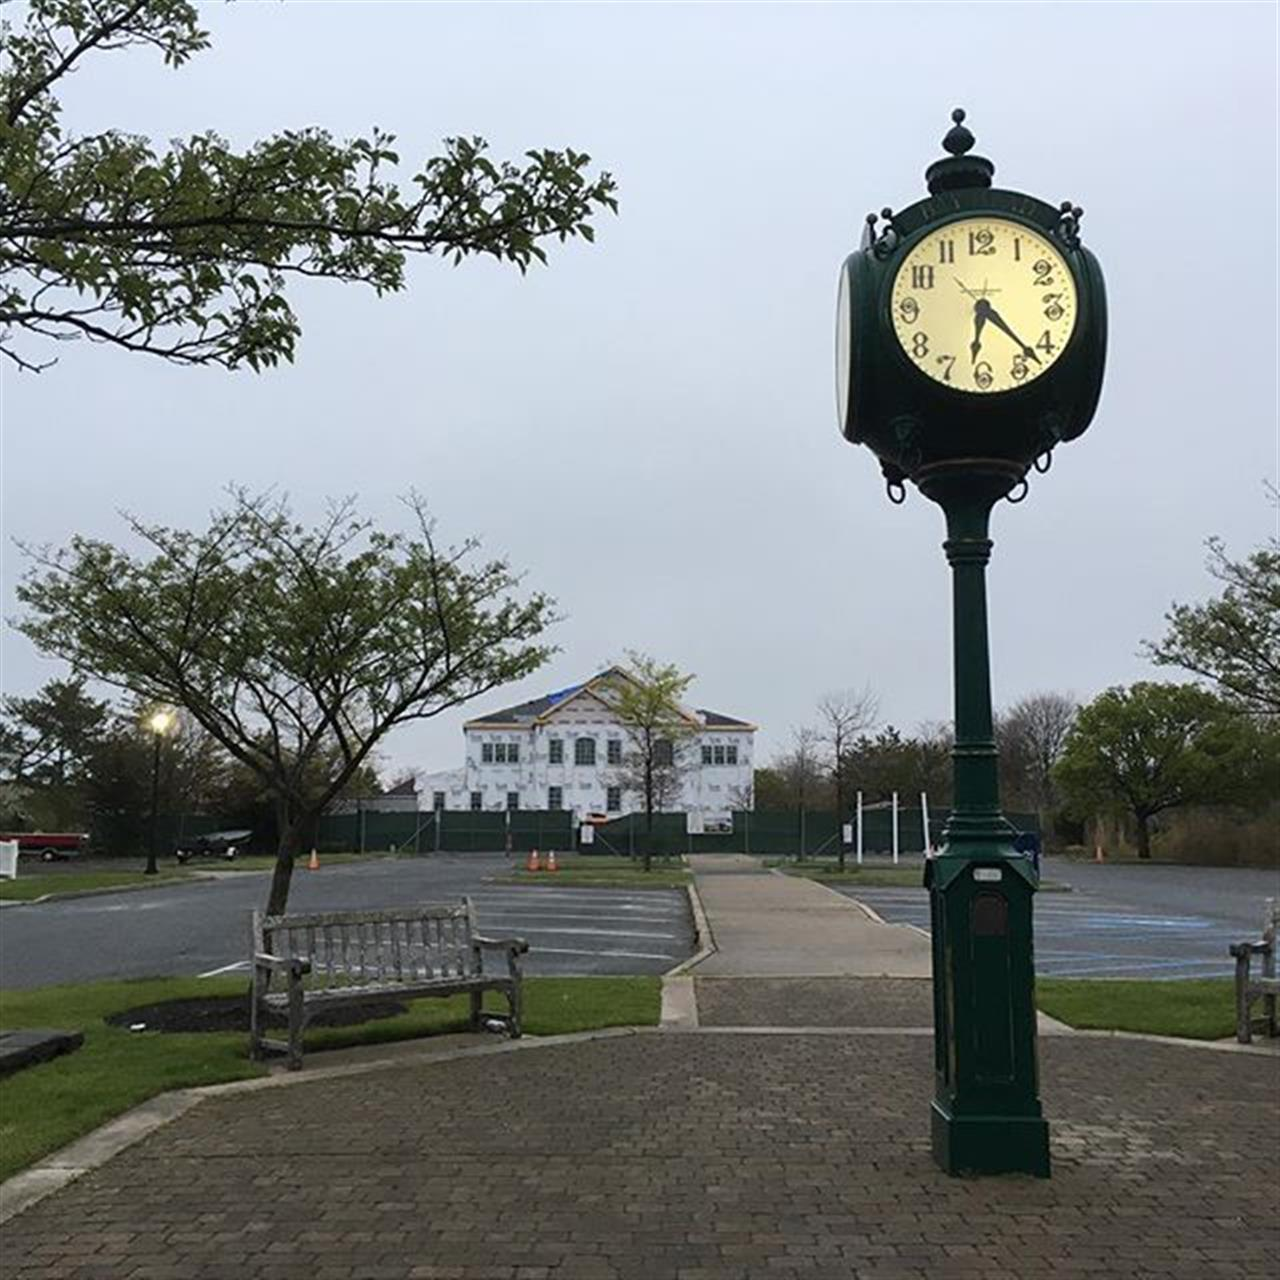 The new Bay Head Borough Hall and clock tower, Bay Head, New Jersey.